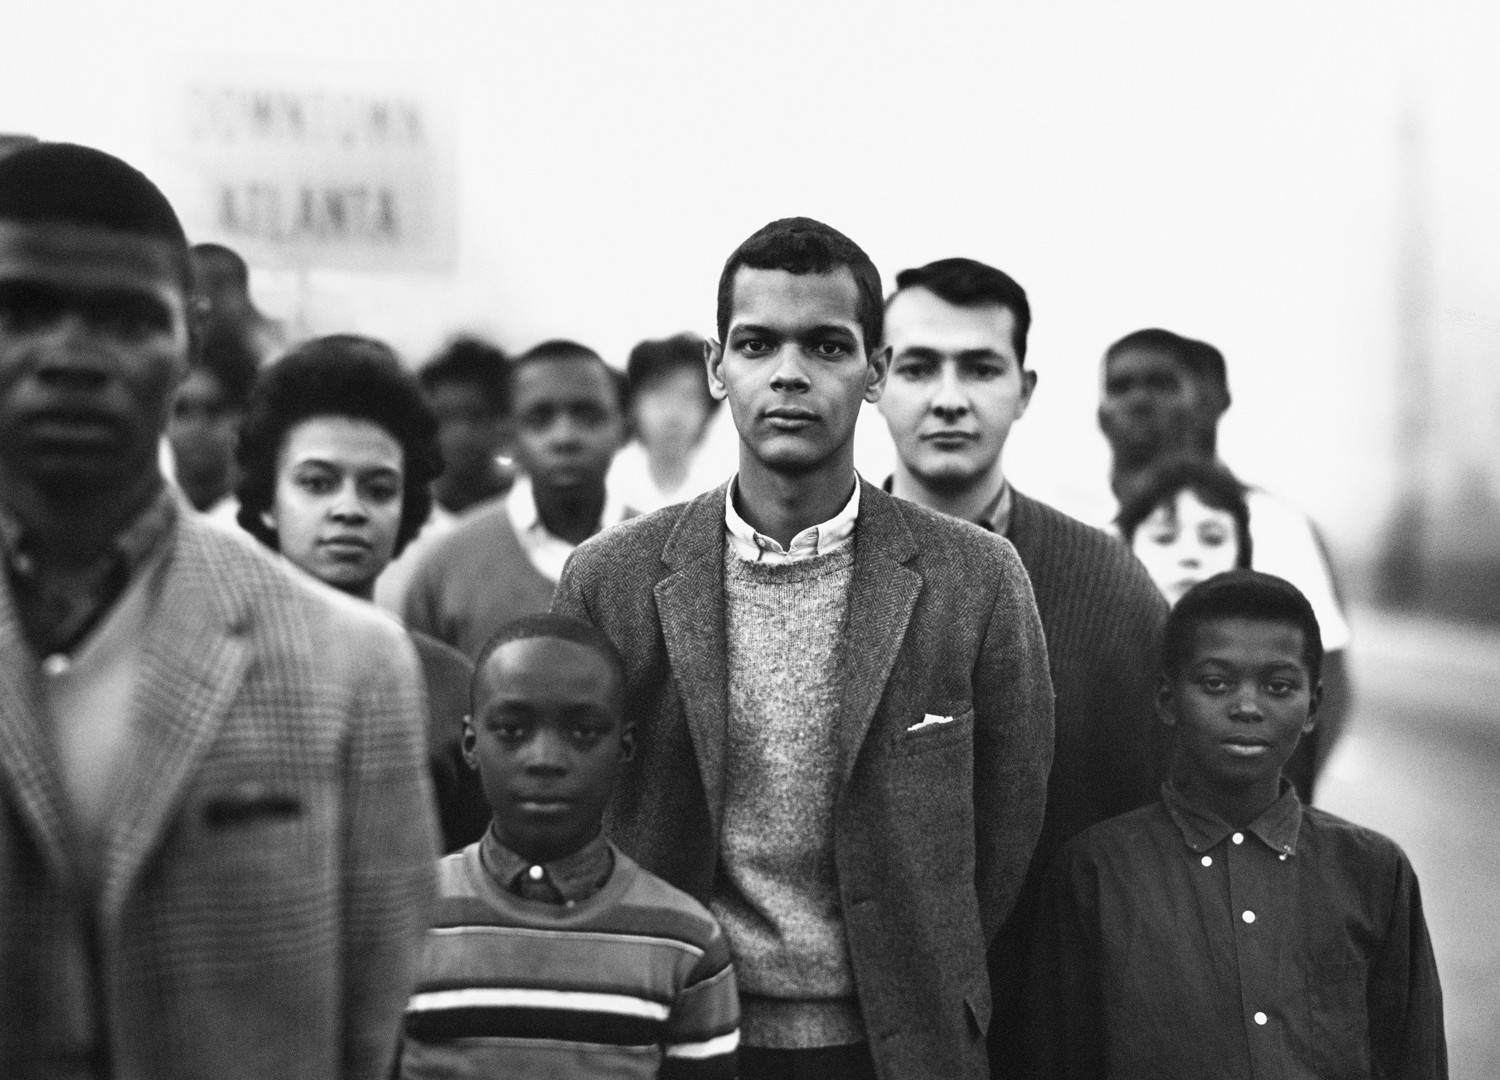 Richard Avedon, Student Non-violent Coordinating Committee headed by Julian Bond, Atlanta, Georgia, March 23, 1963